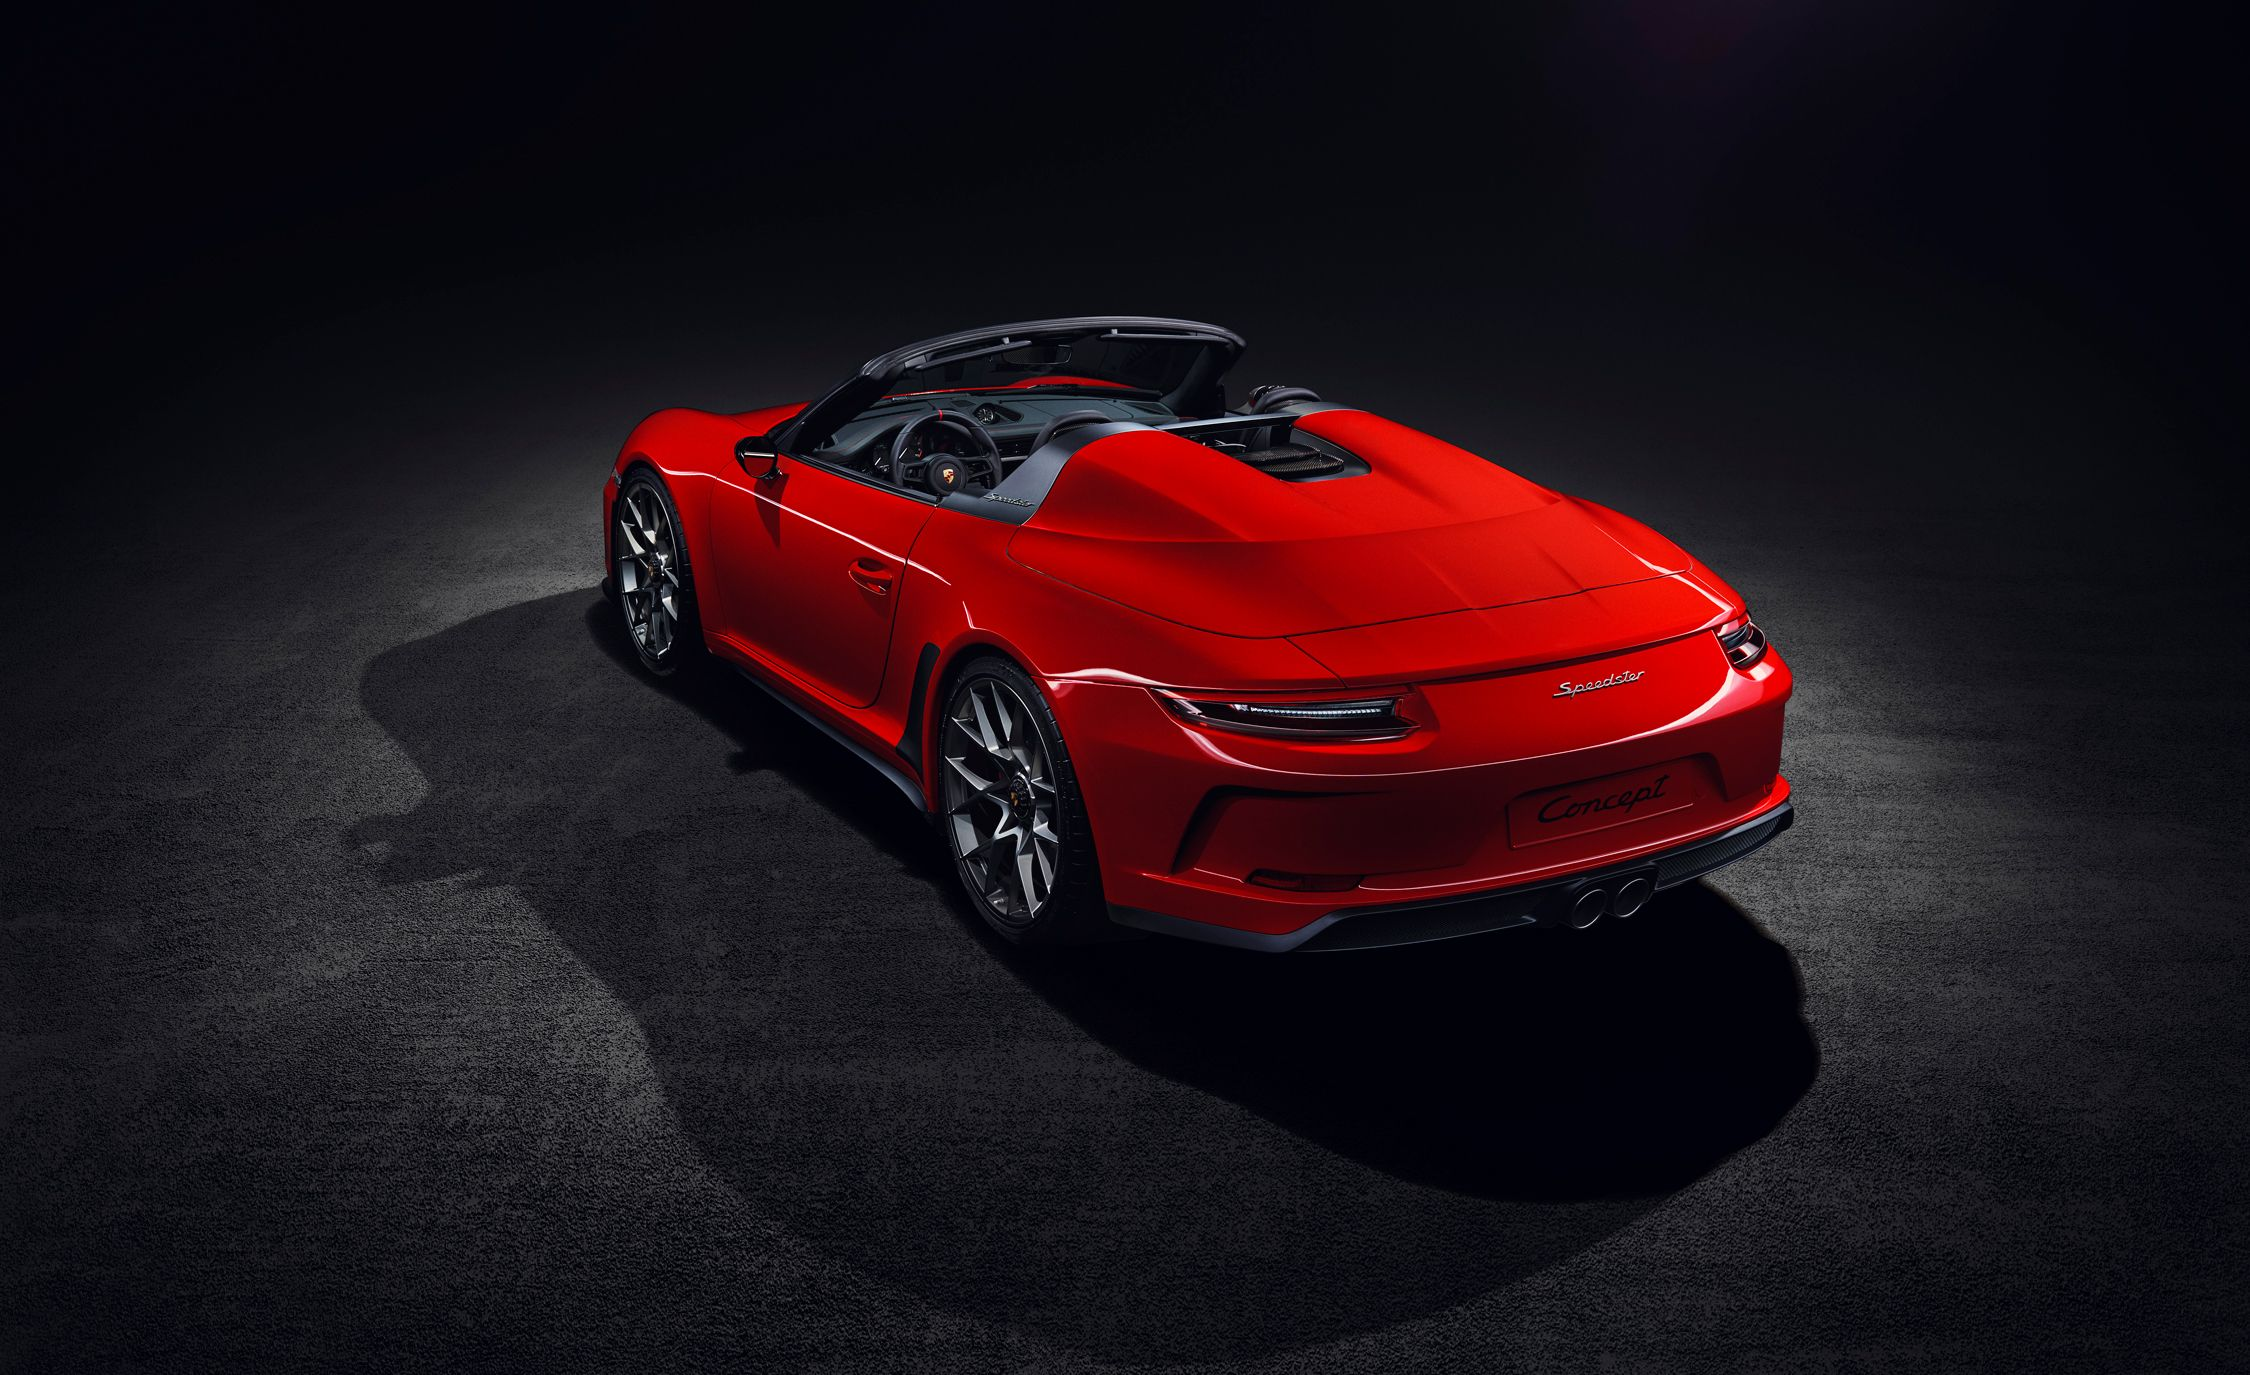 Porsche 911 Speedster Confirmed For Production As A Send